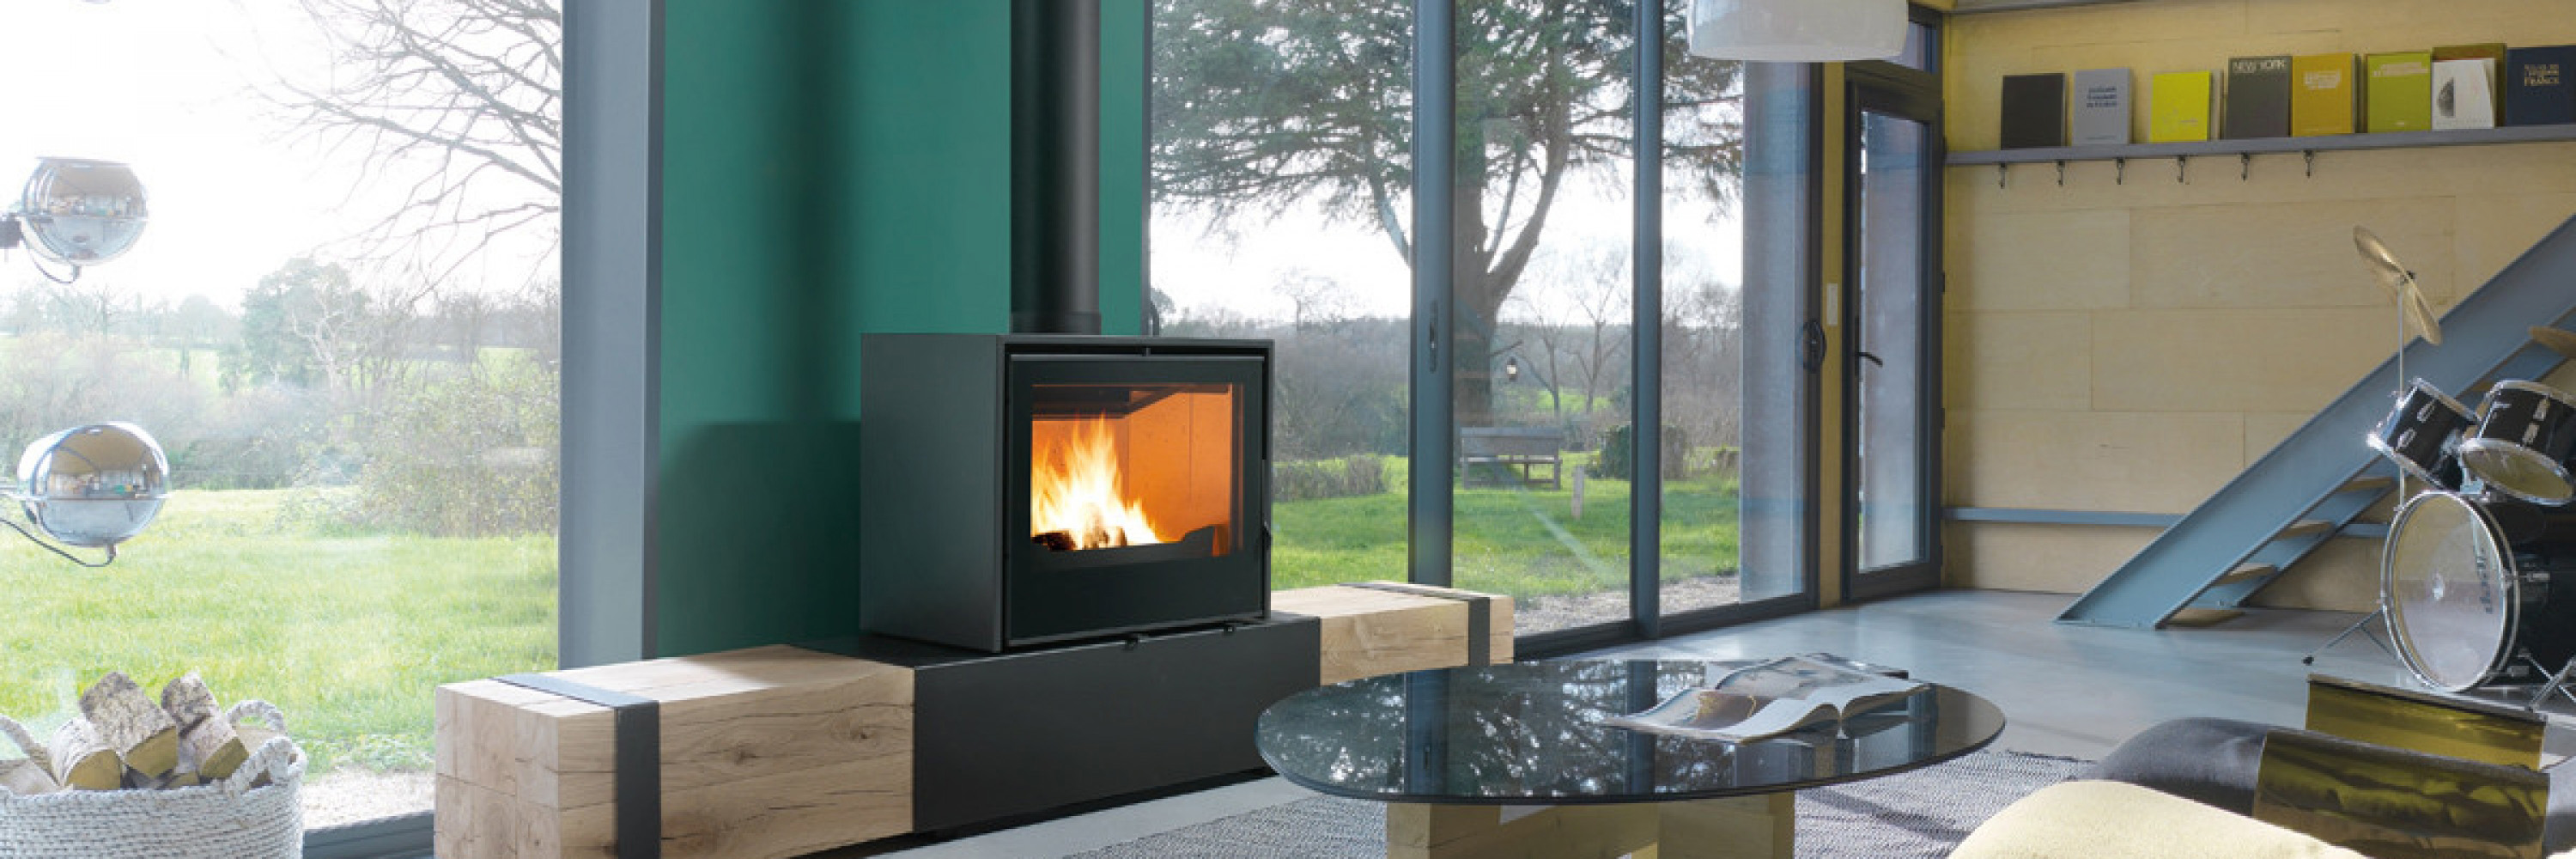 fireplaces-metal-axis-home